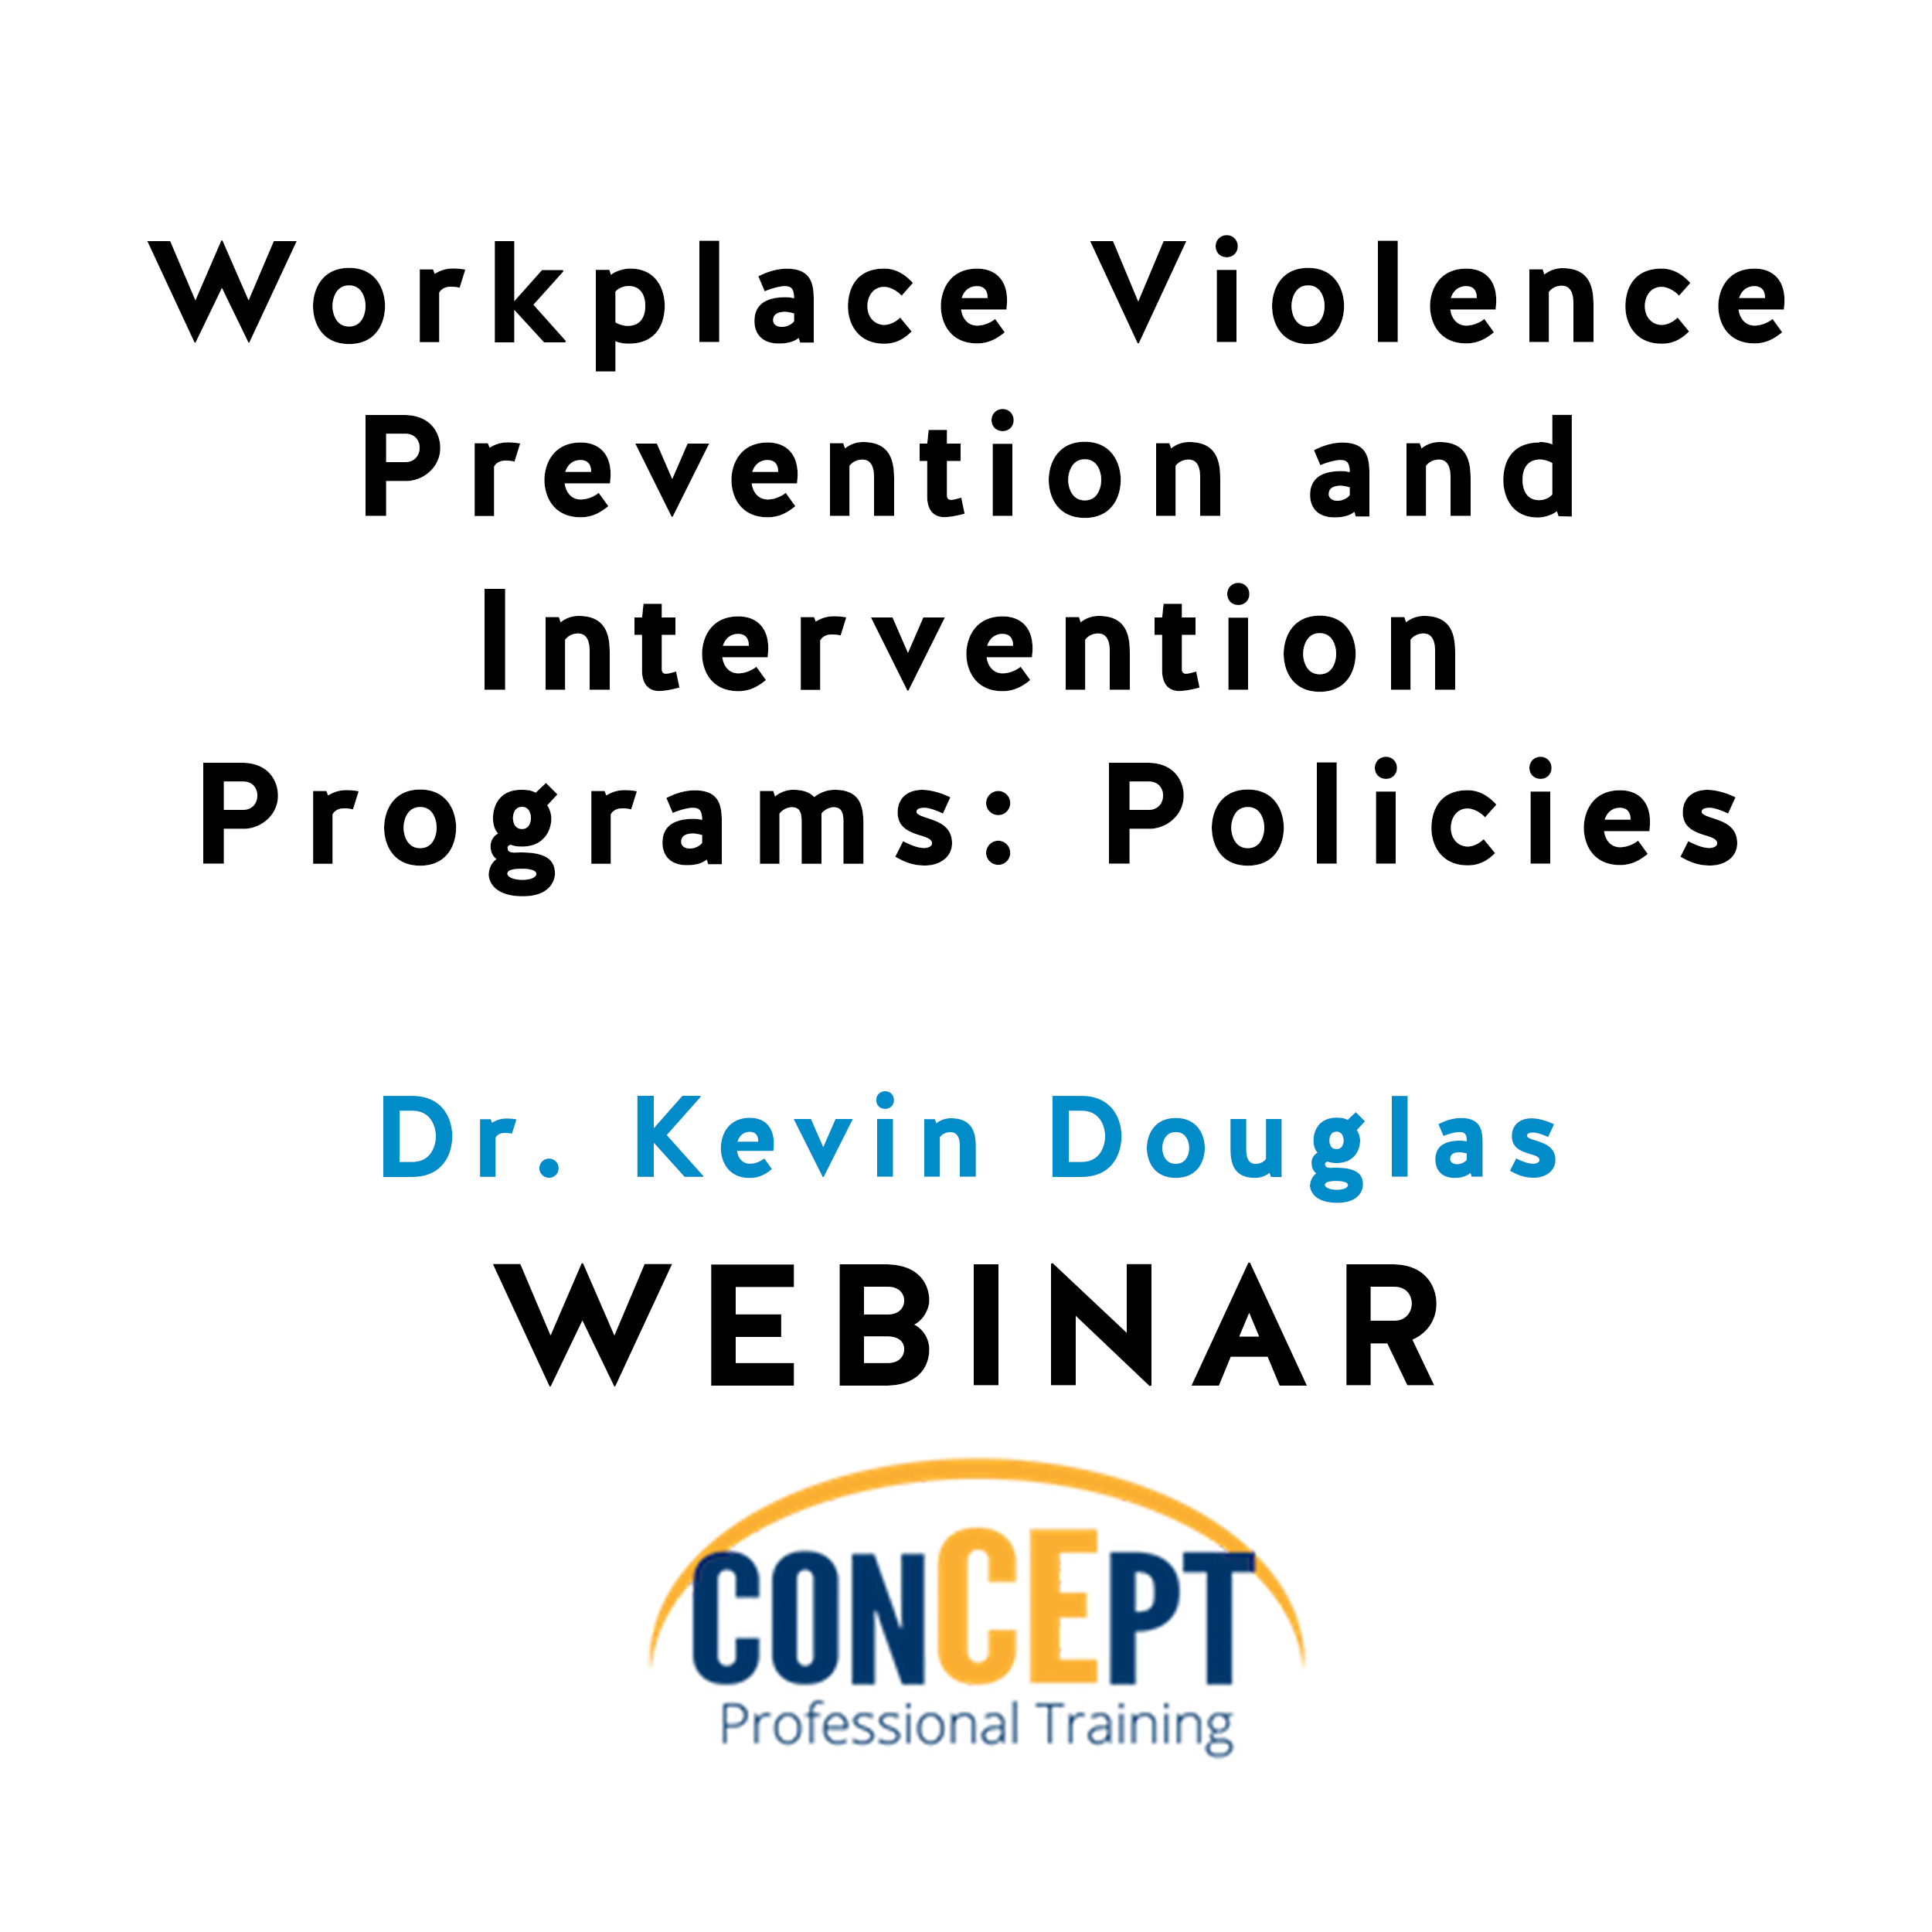 Workplace Violence Prevention And Intervention Programs Policies